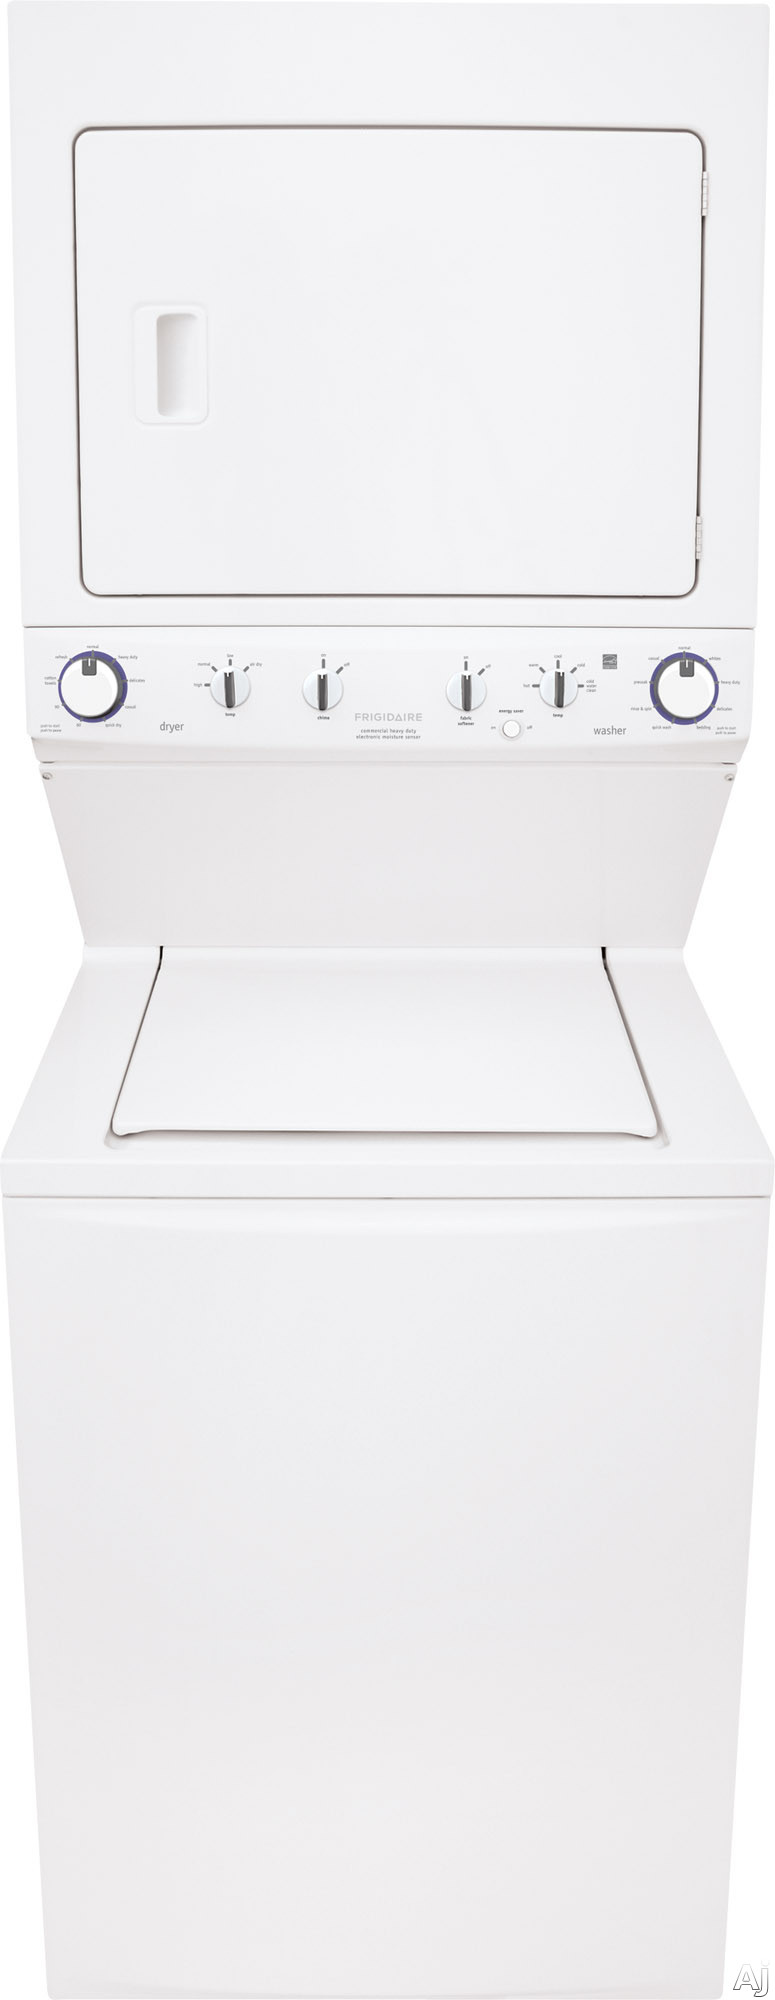 Frigidaire FFLE4033Q 27 Inch Electric Laundry Center with 3.8 cu. ft. Washer, 5.5 cu. ft. Dryer, ENERGY STAR, 9 Wash Cycles, 9 Dry Cycles, Quick Cycle, Pre-Soak, Fabric Softener Dispenser and Moisture Sensors